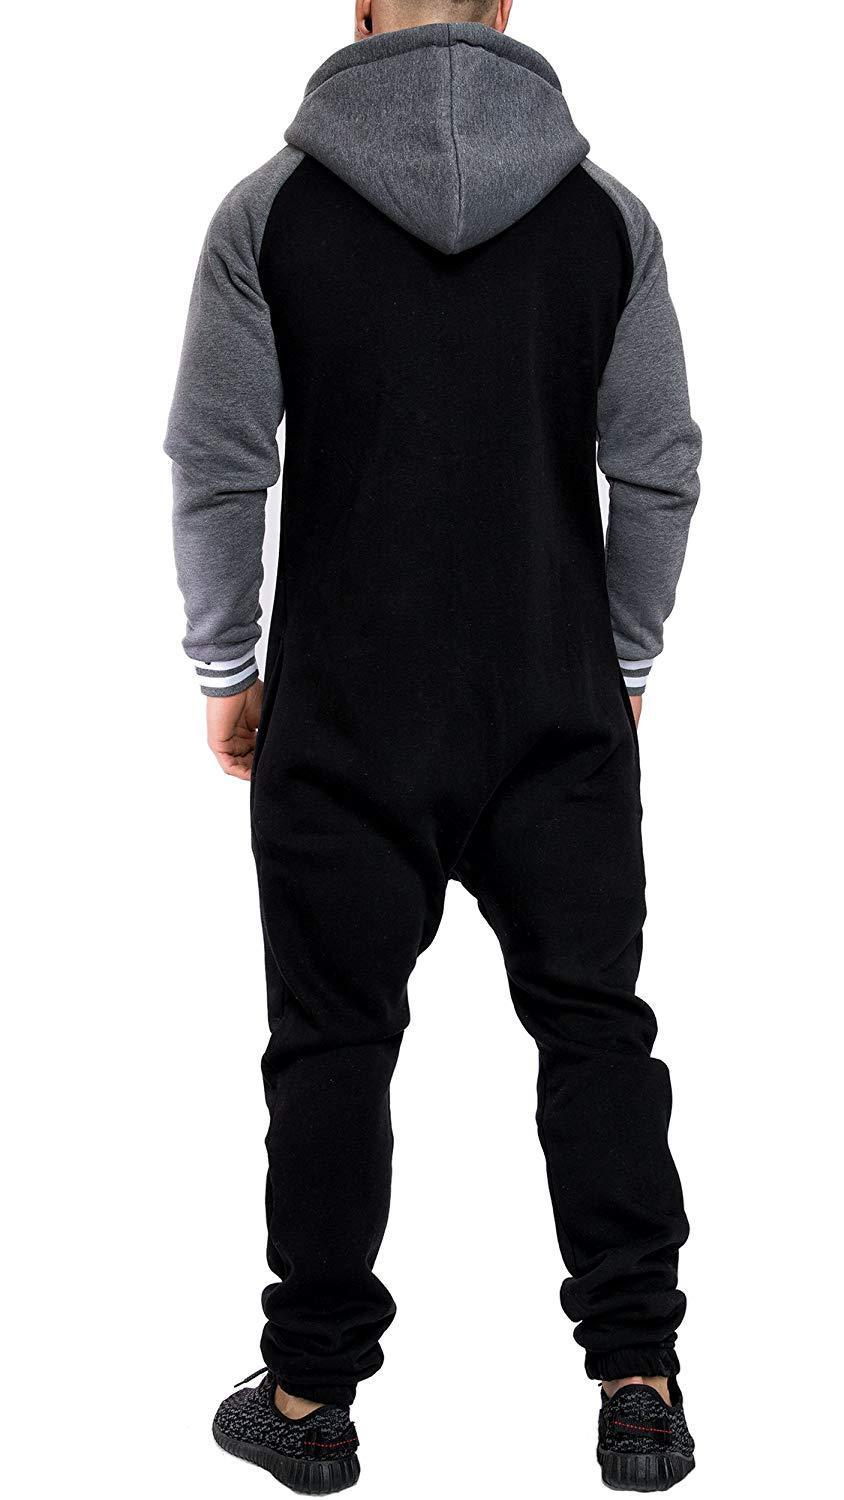 Casual Autumn Hooded Tracksuit Jumpsuit Long Pants Romper For Male Mens Fleece warm Overalls Sweatshirts Male Streetwear X9126 21